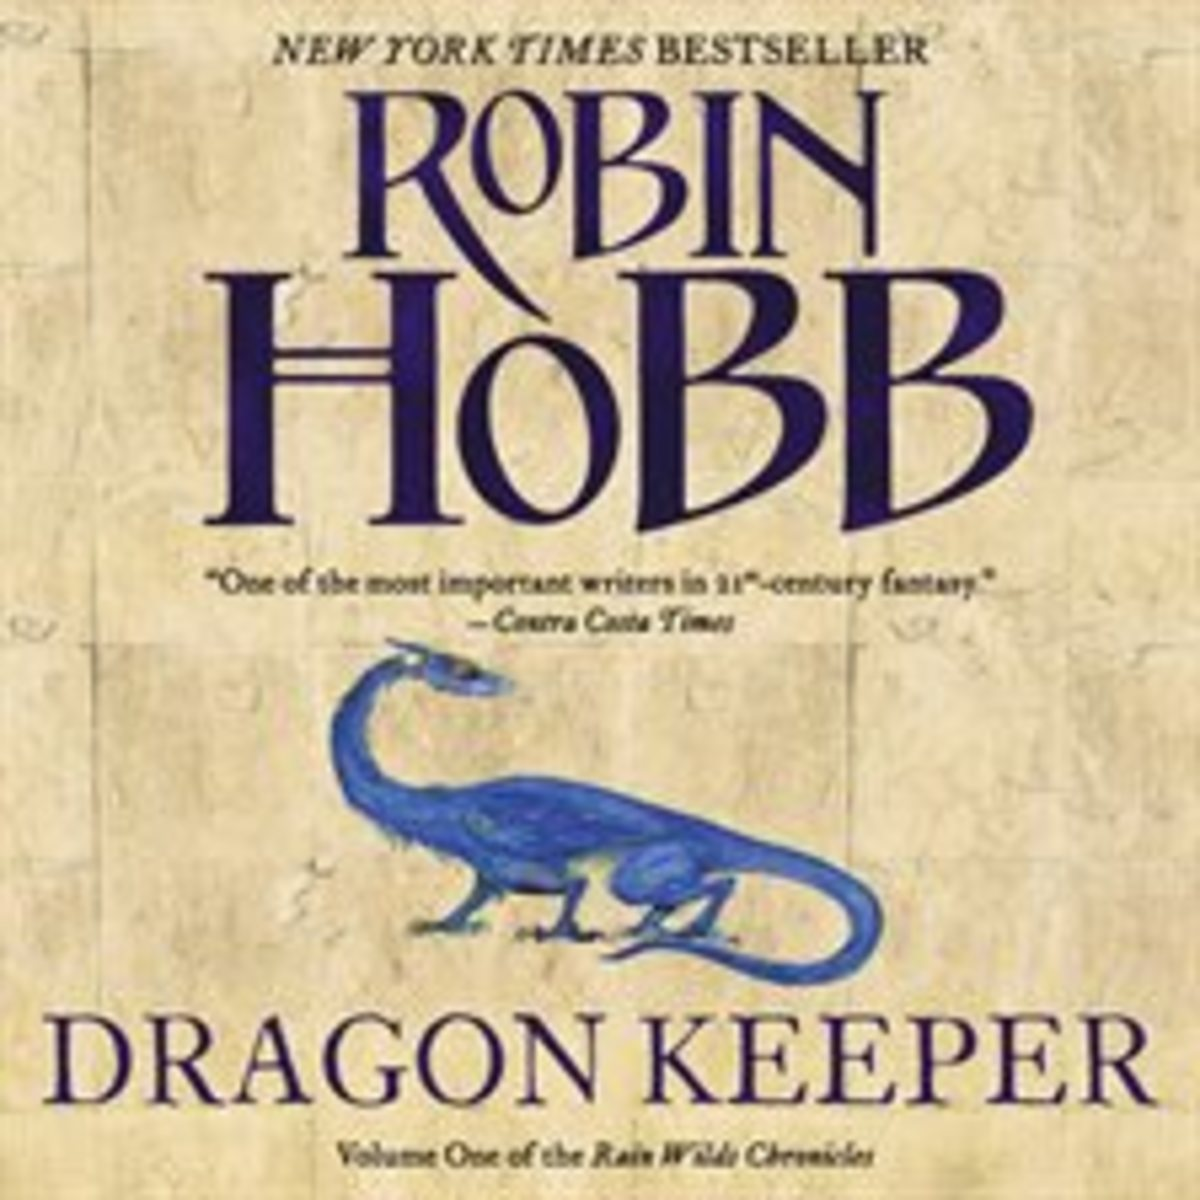 audiobook-review-dragon-keeper-by-robin-hobb